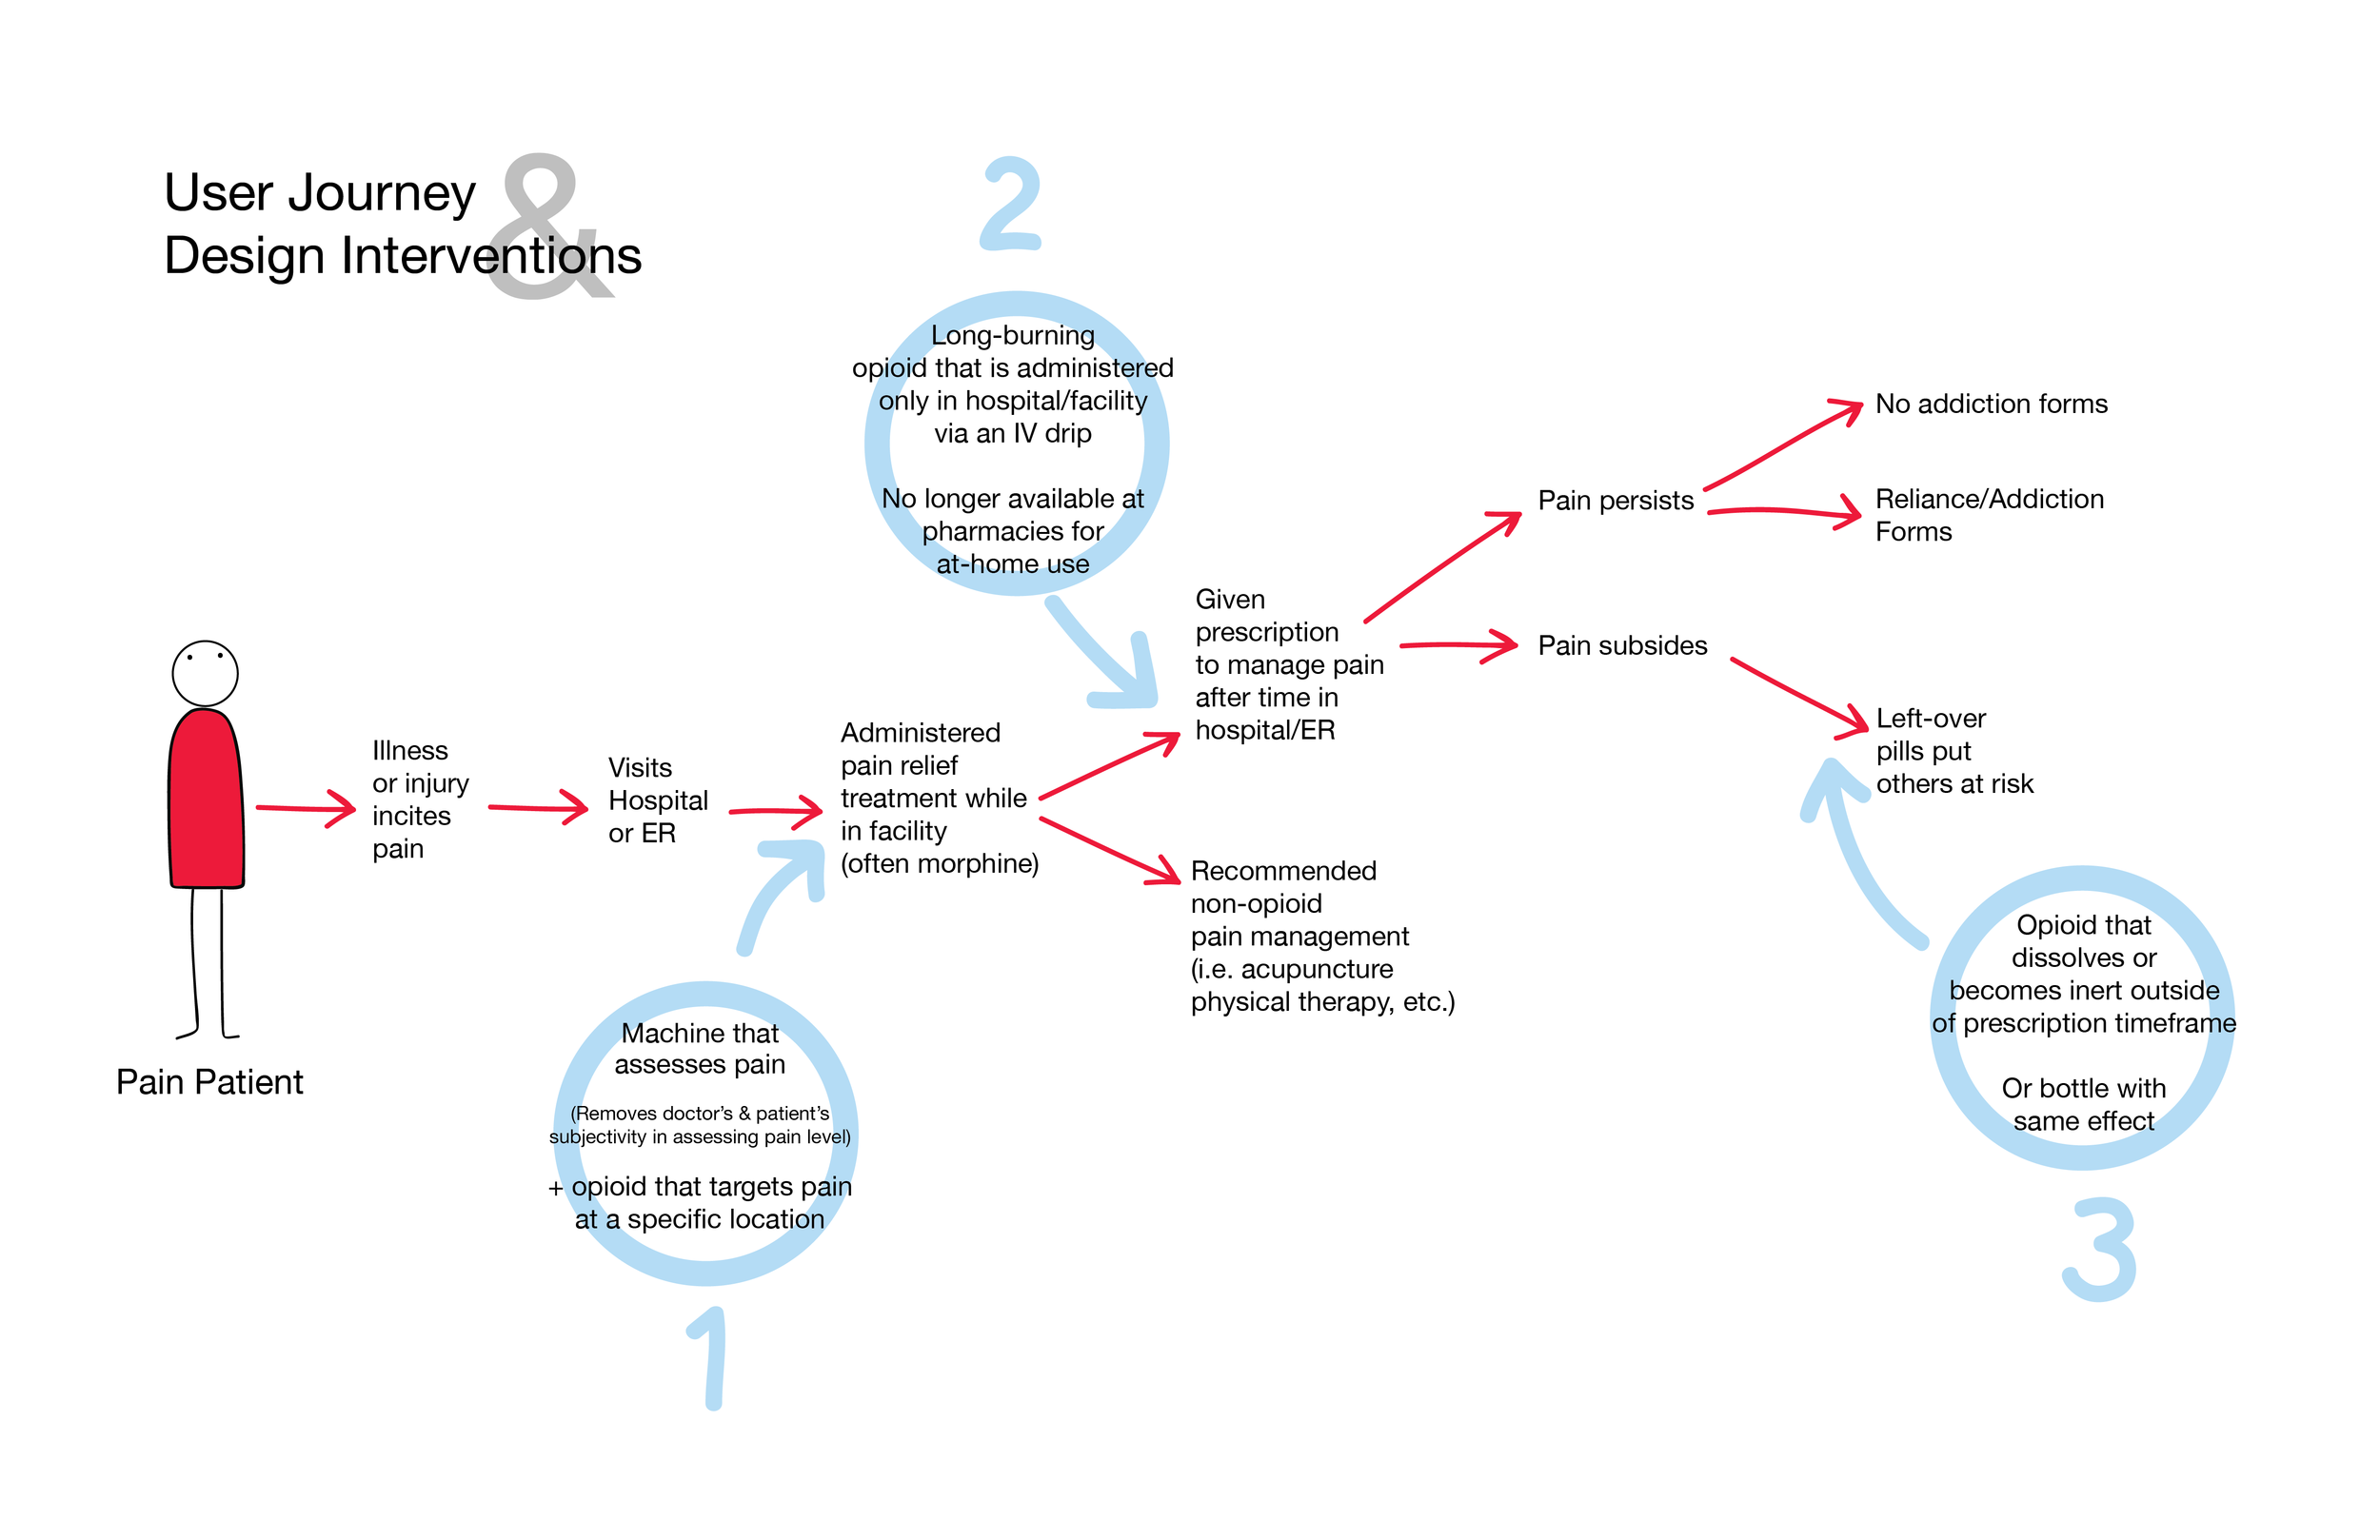 User Journey_with Design interventions_Nov 15-01.png